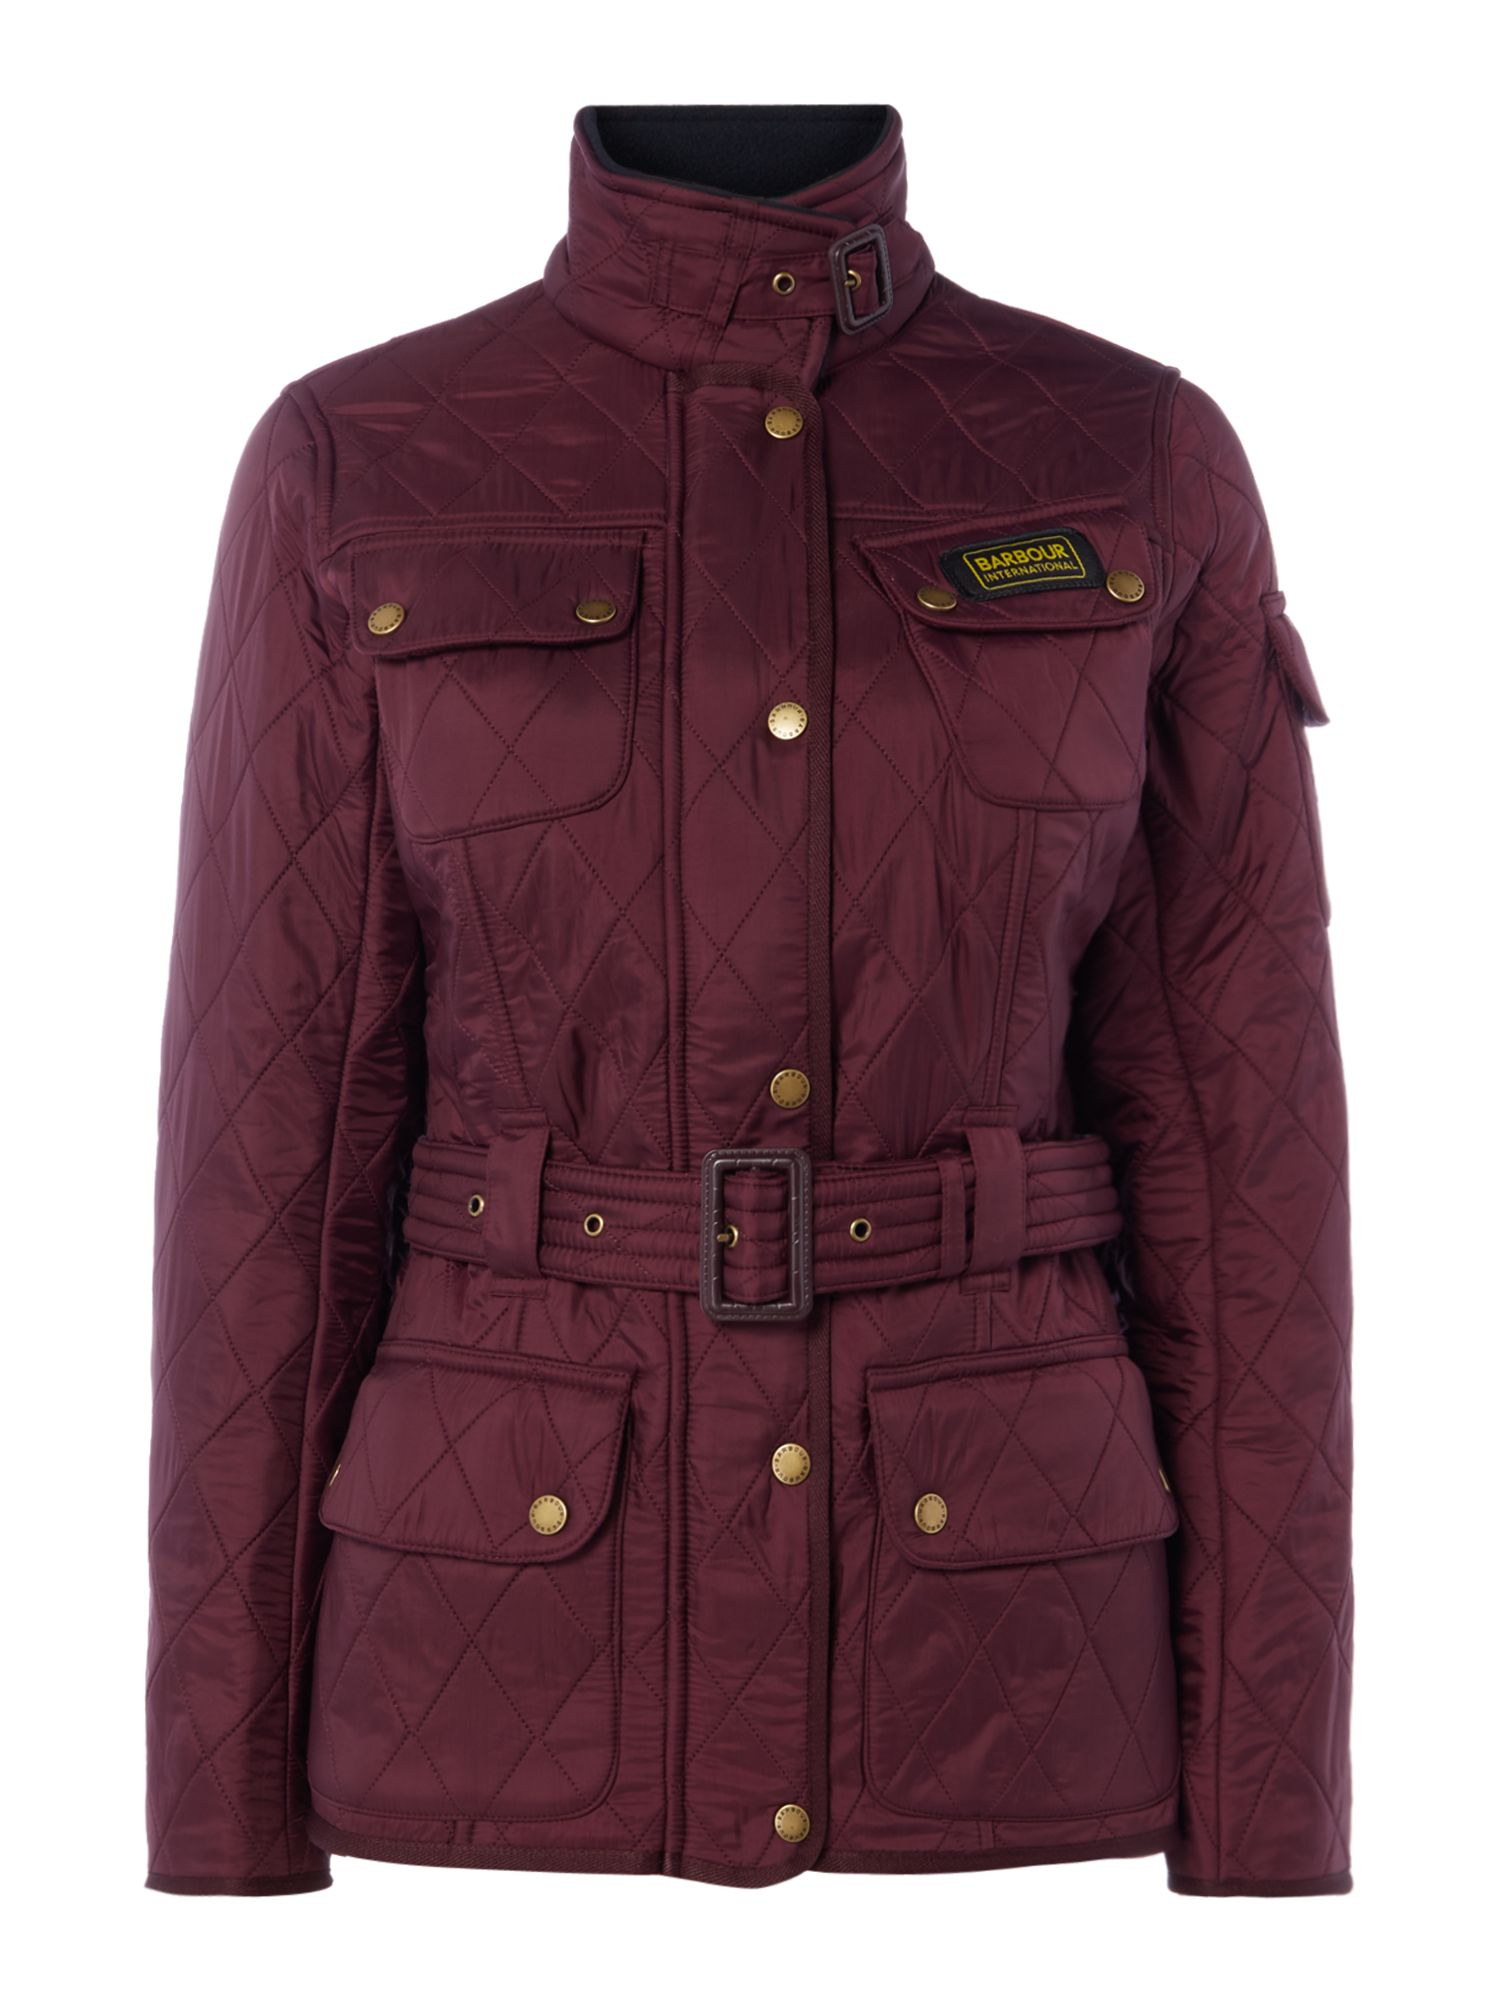 Barbour International Polarquilt Jacket, Wine